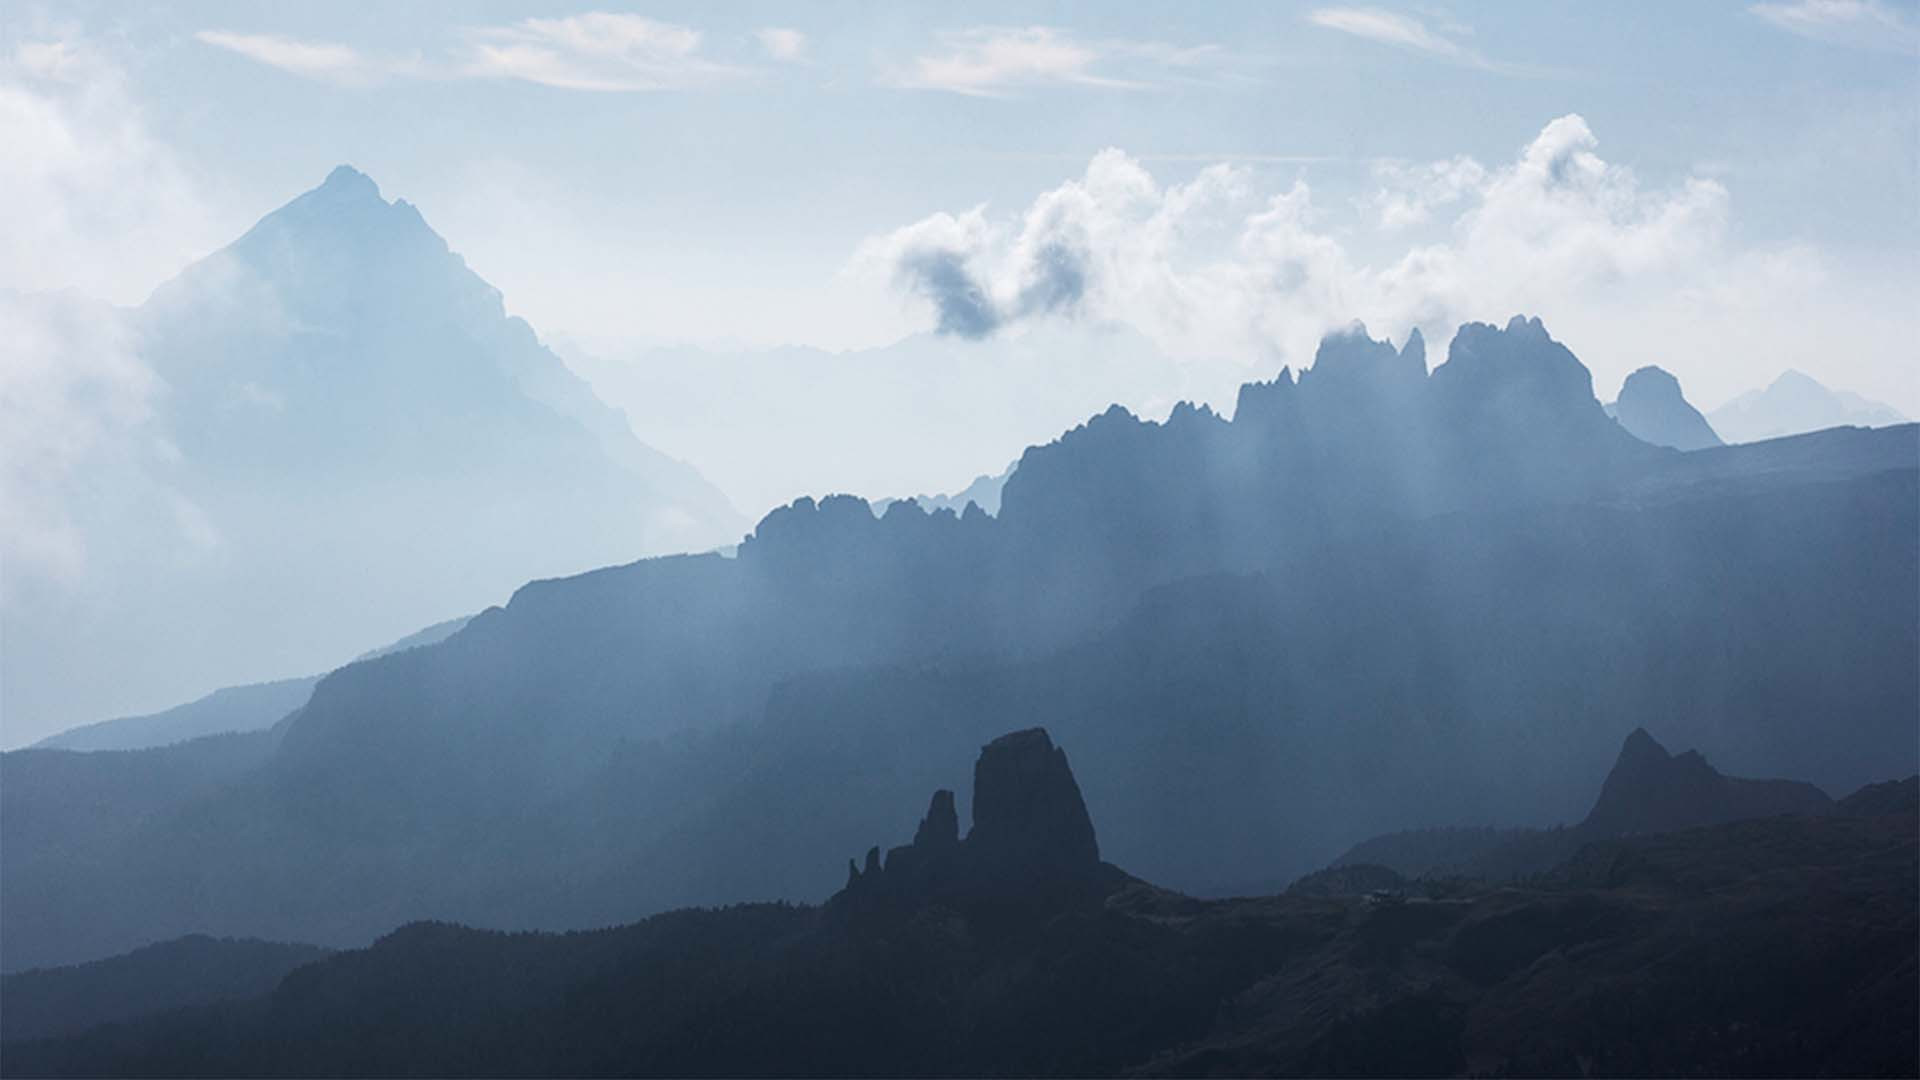 Silhouettes in the Dolomites, Italy